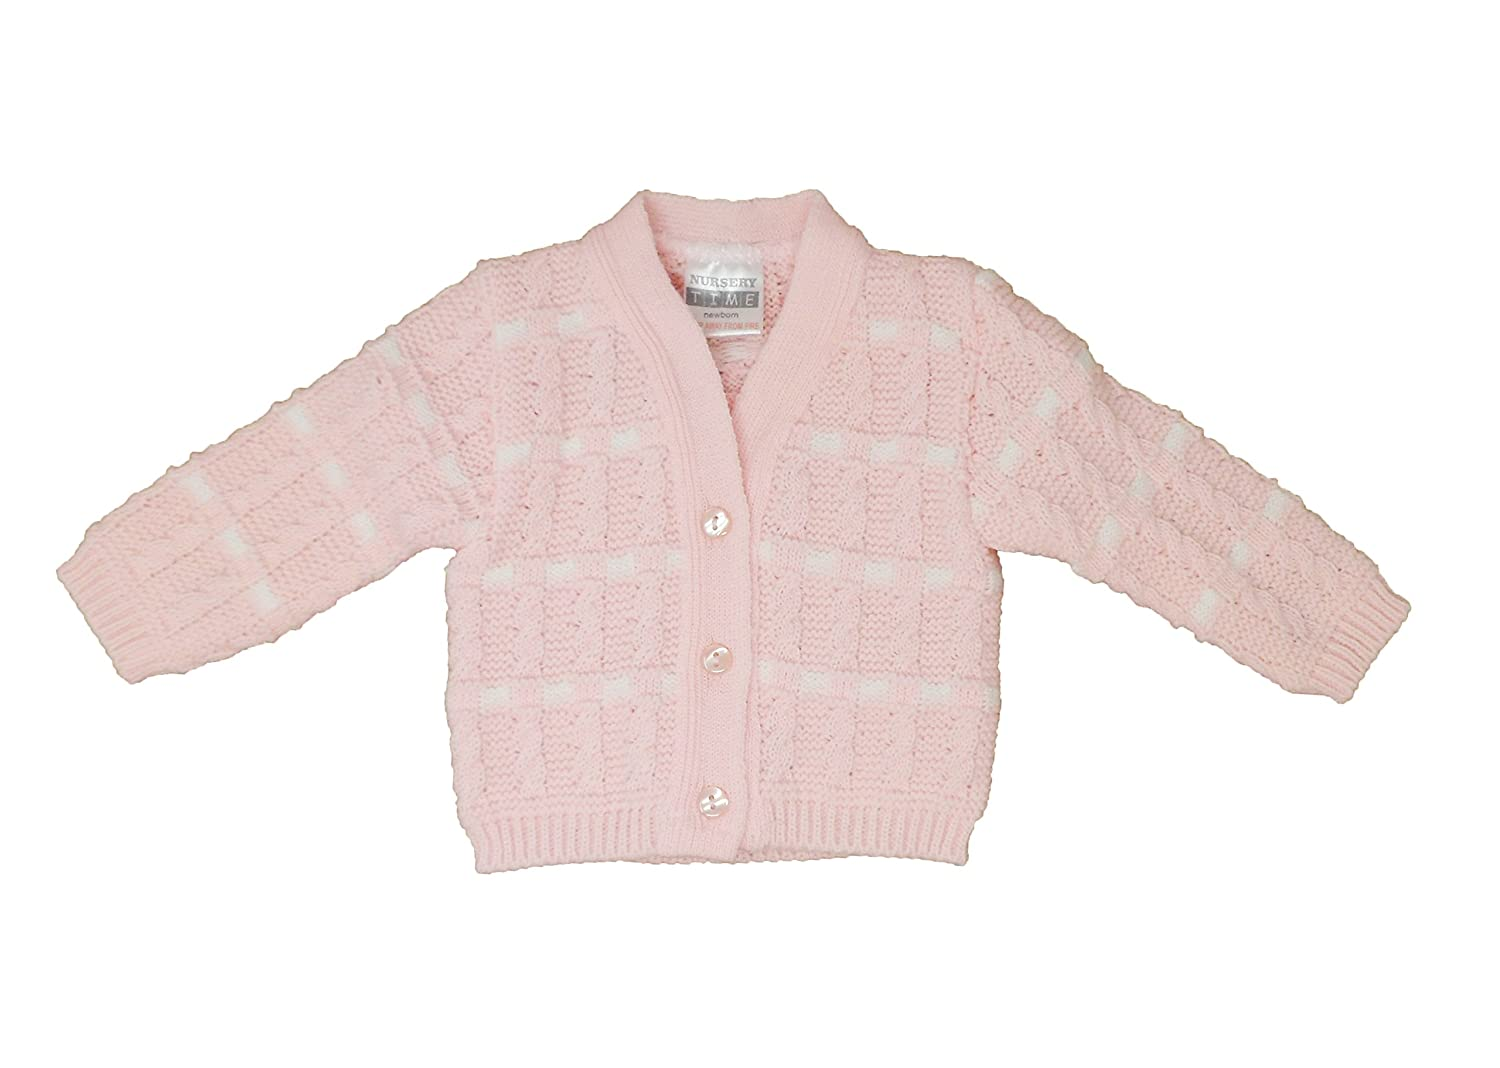 Gorgeous Baby Girls Pink Knitted Cardigan - White Weave Stitch Design